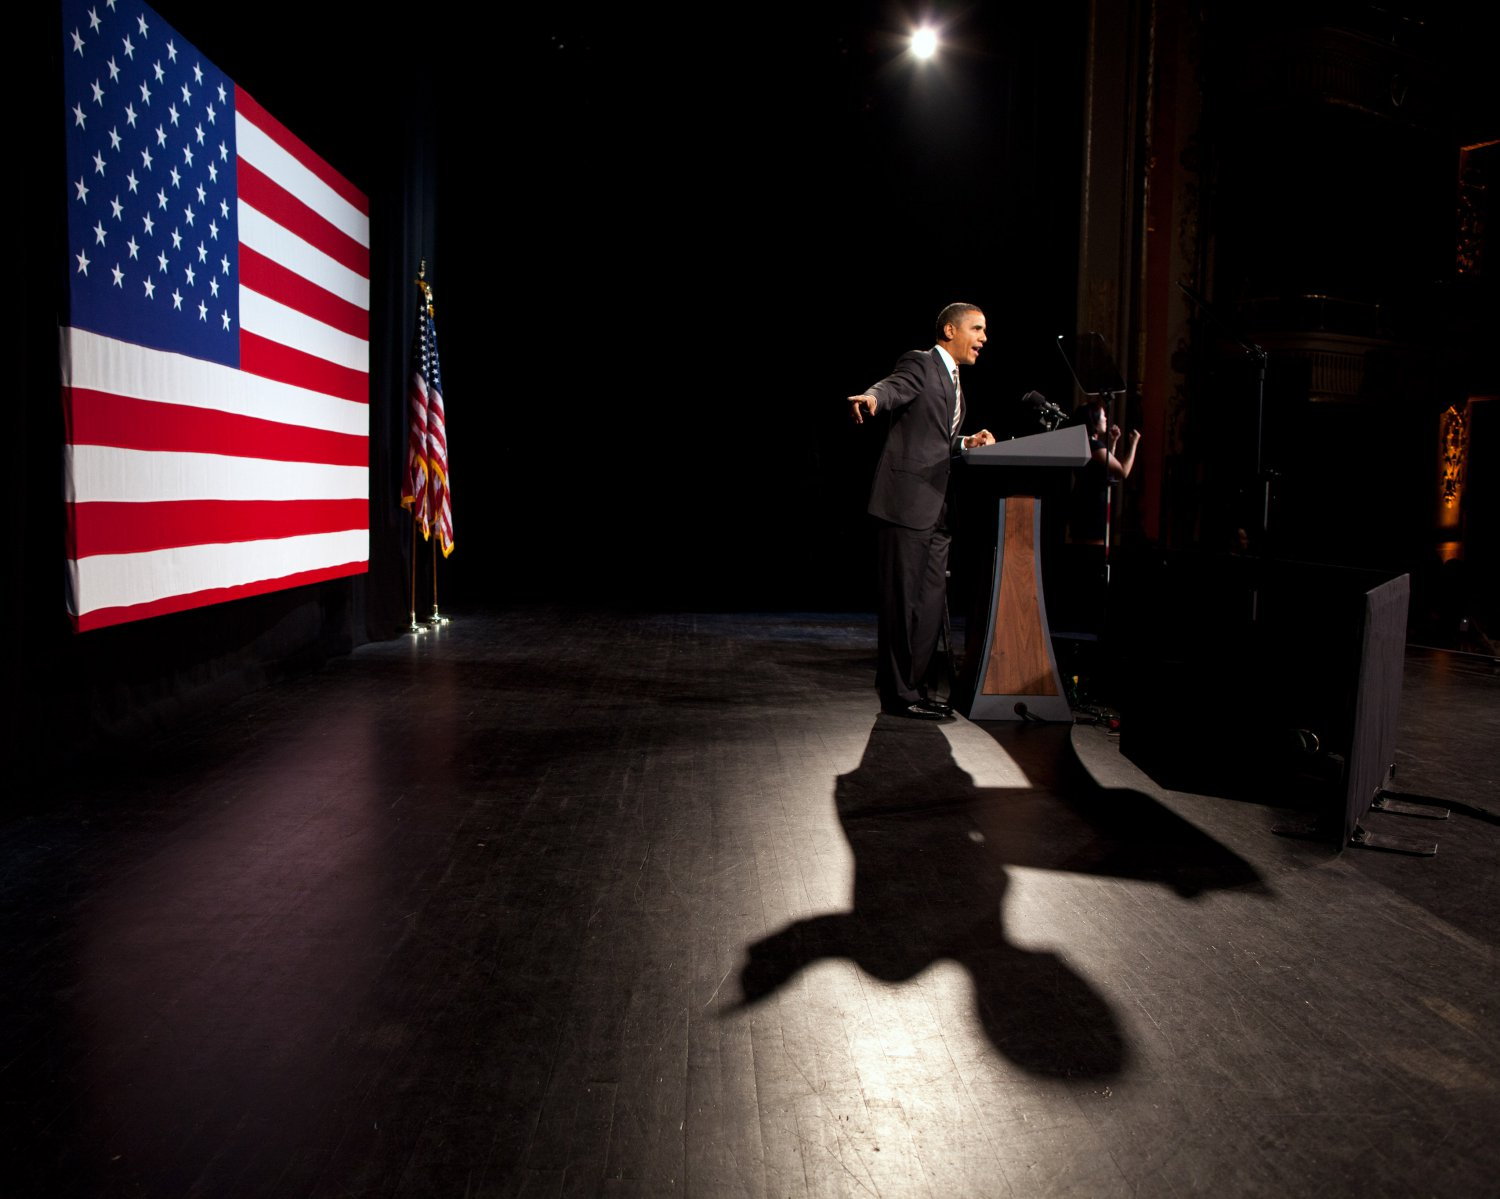 PRESIDENT BARACK OBAMA @ THE APOLLO THEATER IN NEW YORK CITY 8X10 PHOTO (DA-701)